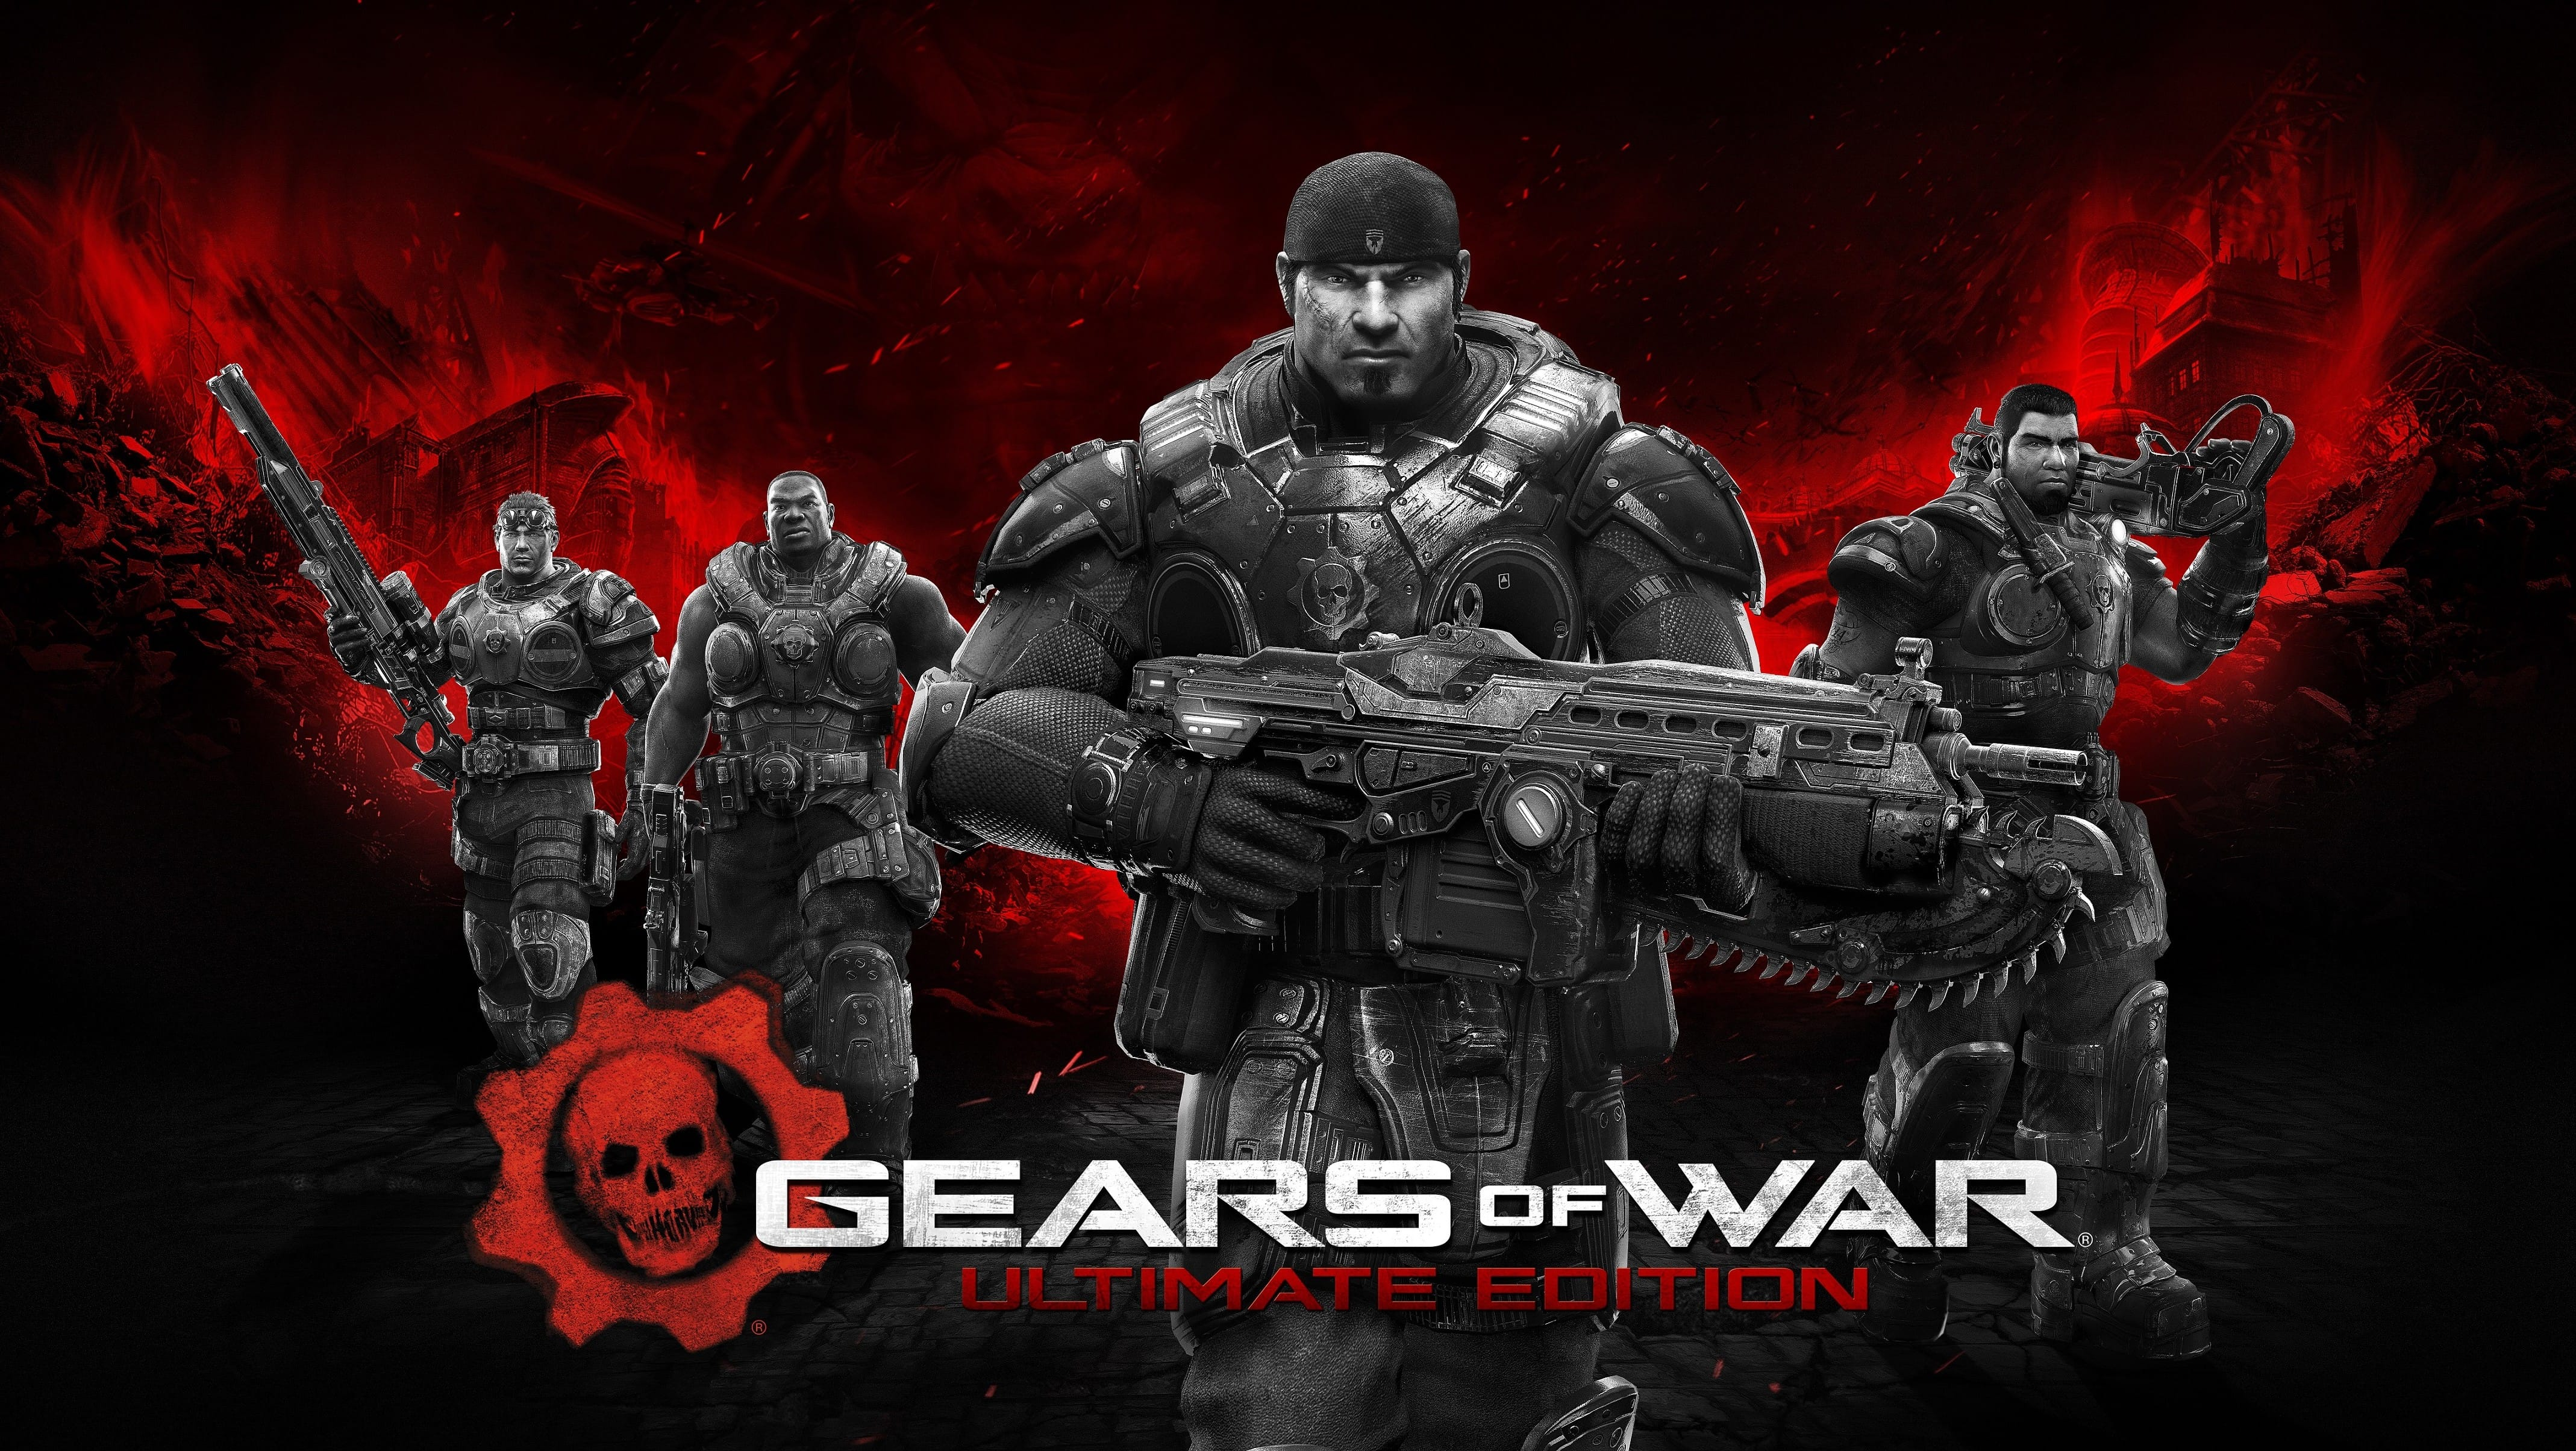 Gears of War: Ultimate Edition Wallpapers